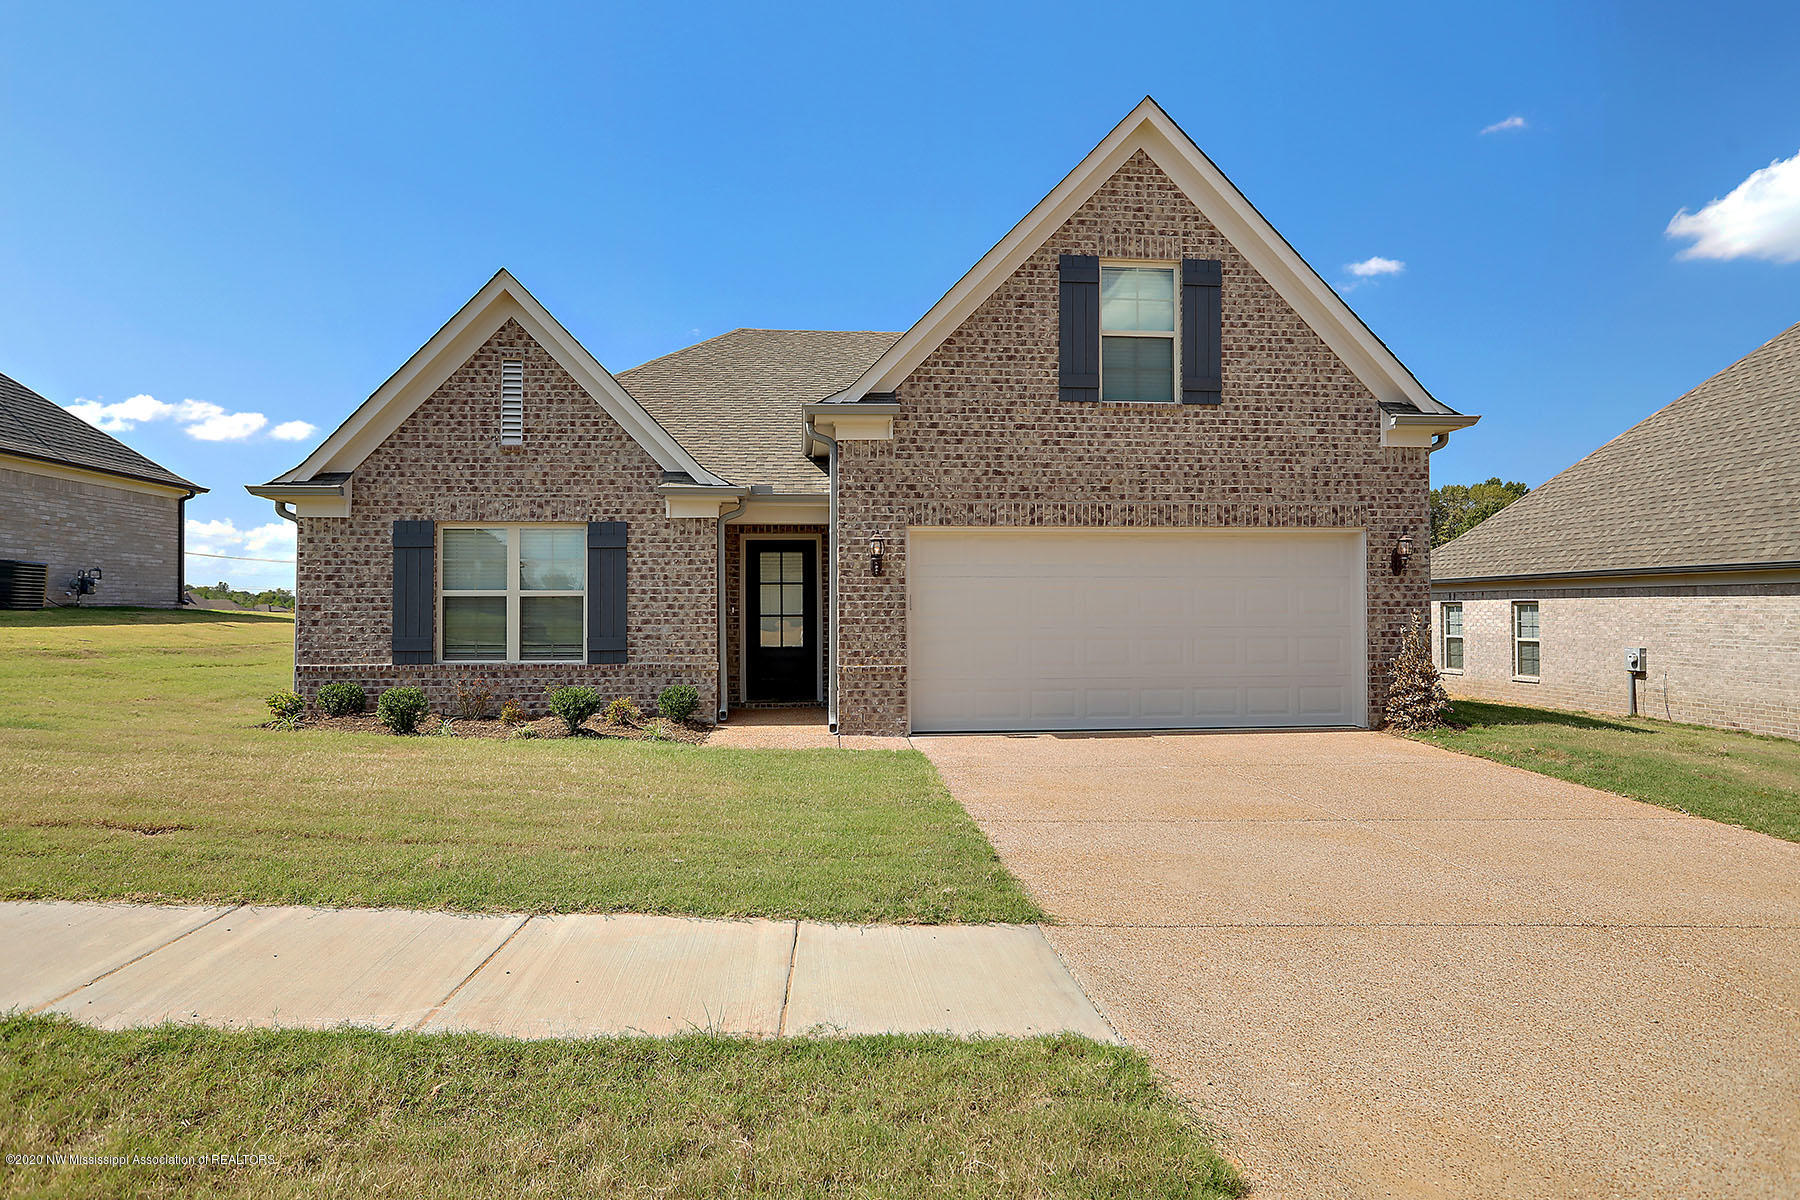 8084 Fitler Cove, Southaven, Mississippi